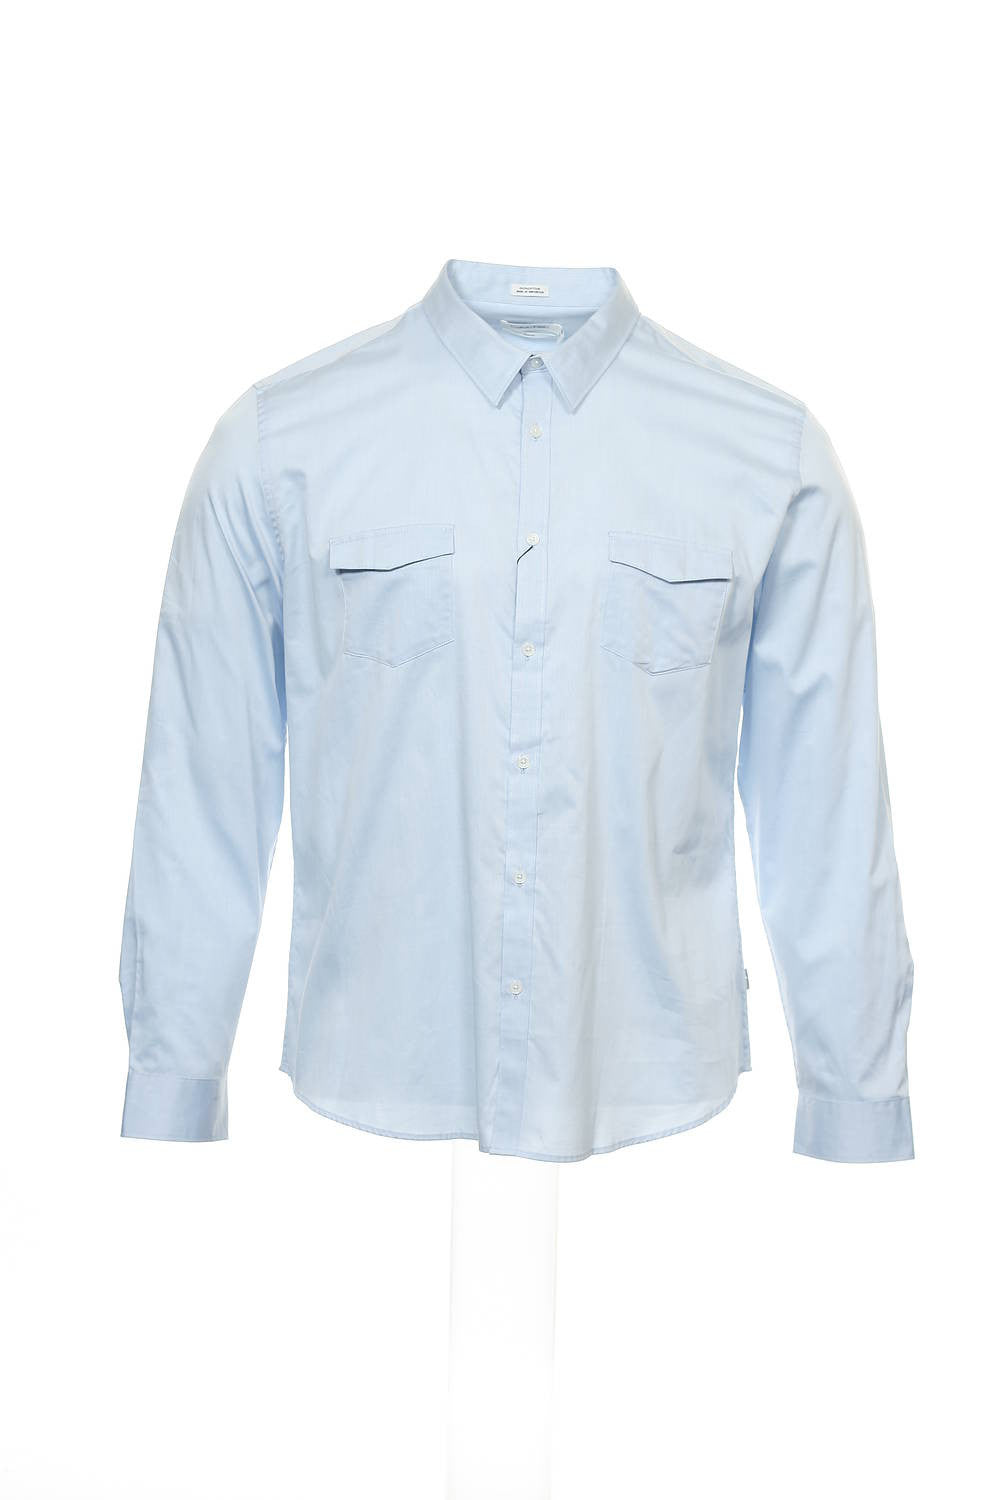 Calvin Klein Mens Light Blue Micro Striped Button Down Shirt